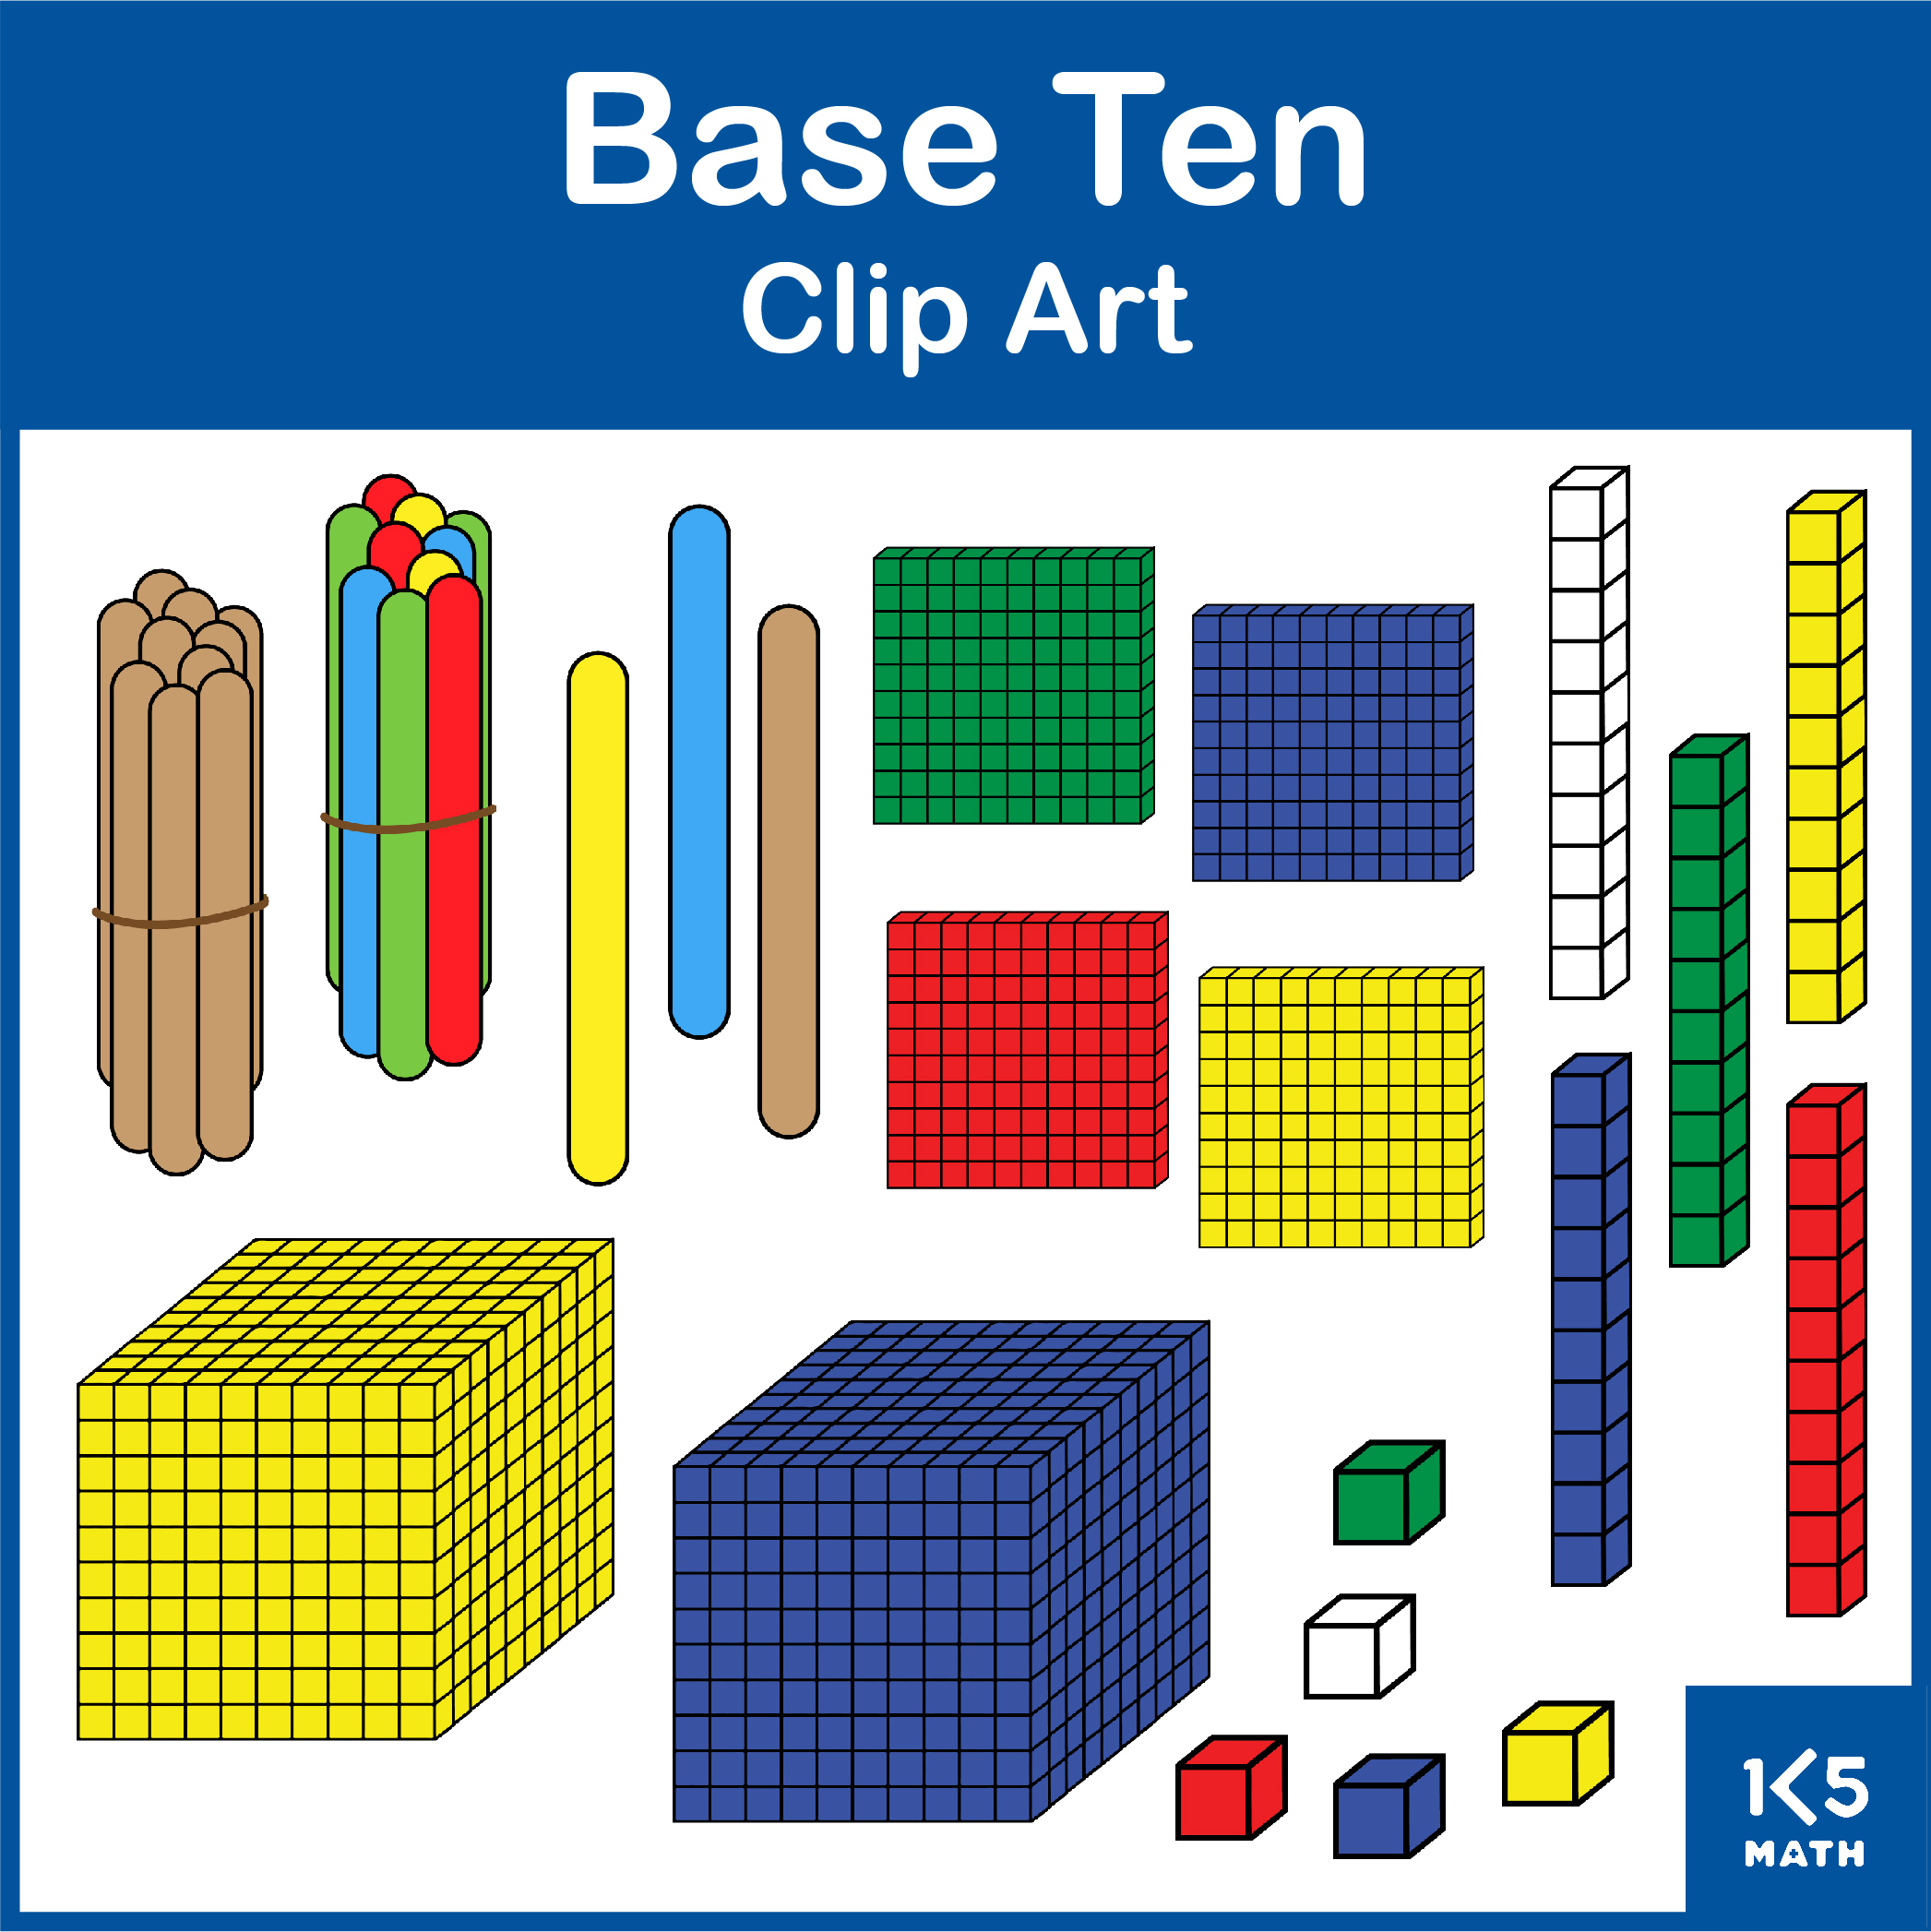 Base Ten Clip Art